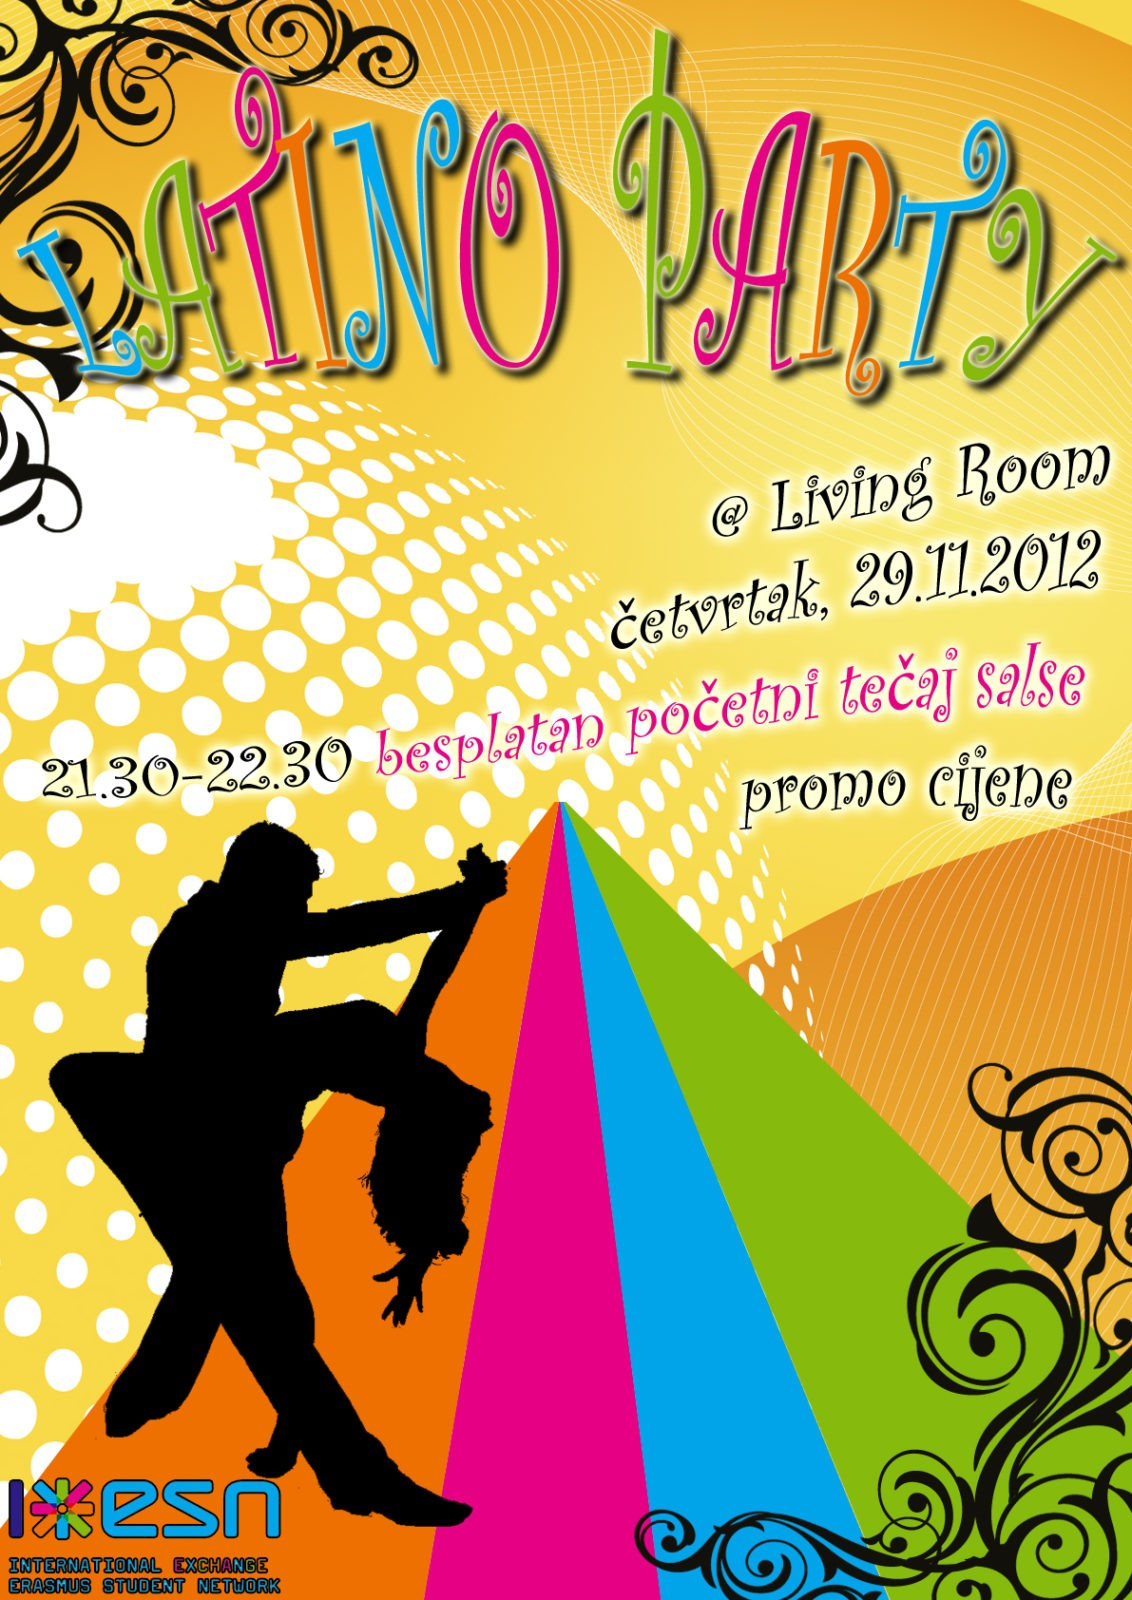 Latino party at Living Room Cafe bar